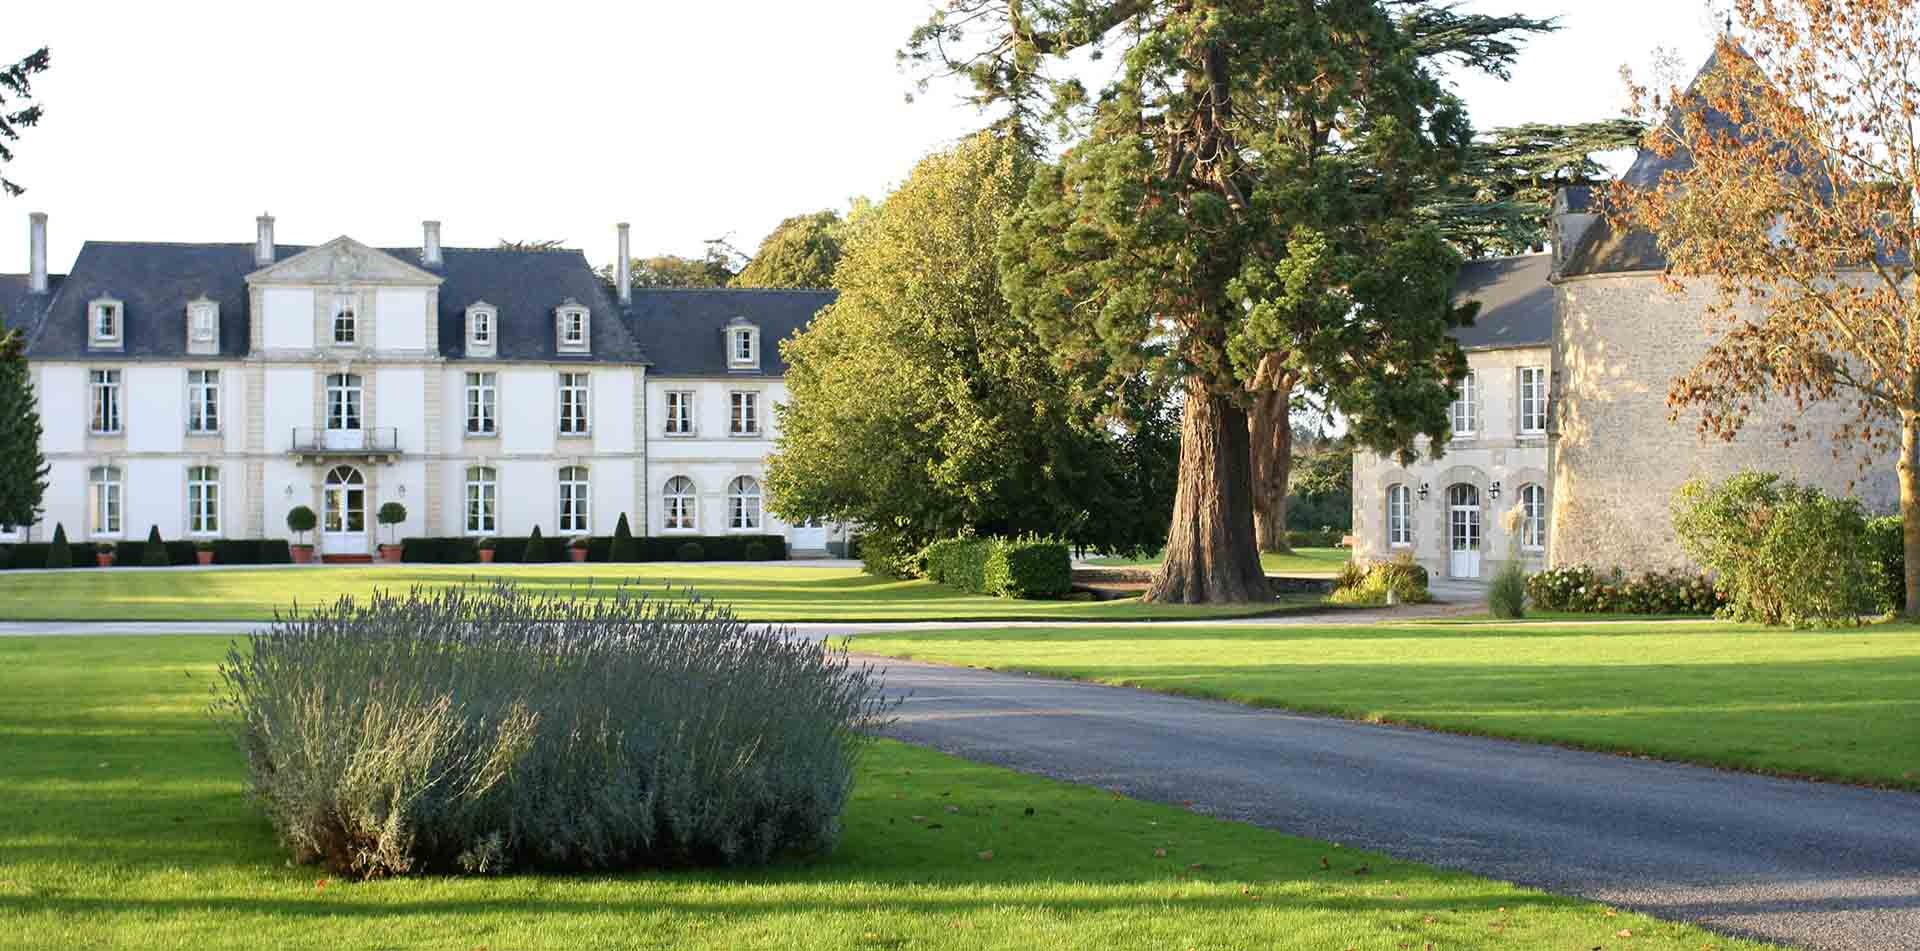 Exterior of Chateau de Sully, Normandy